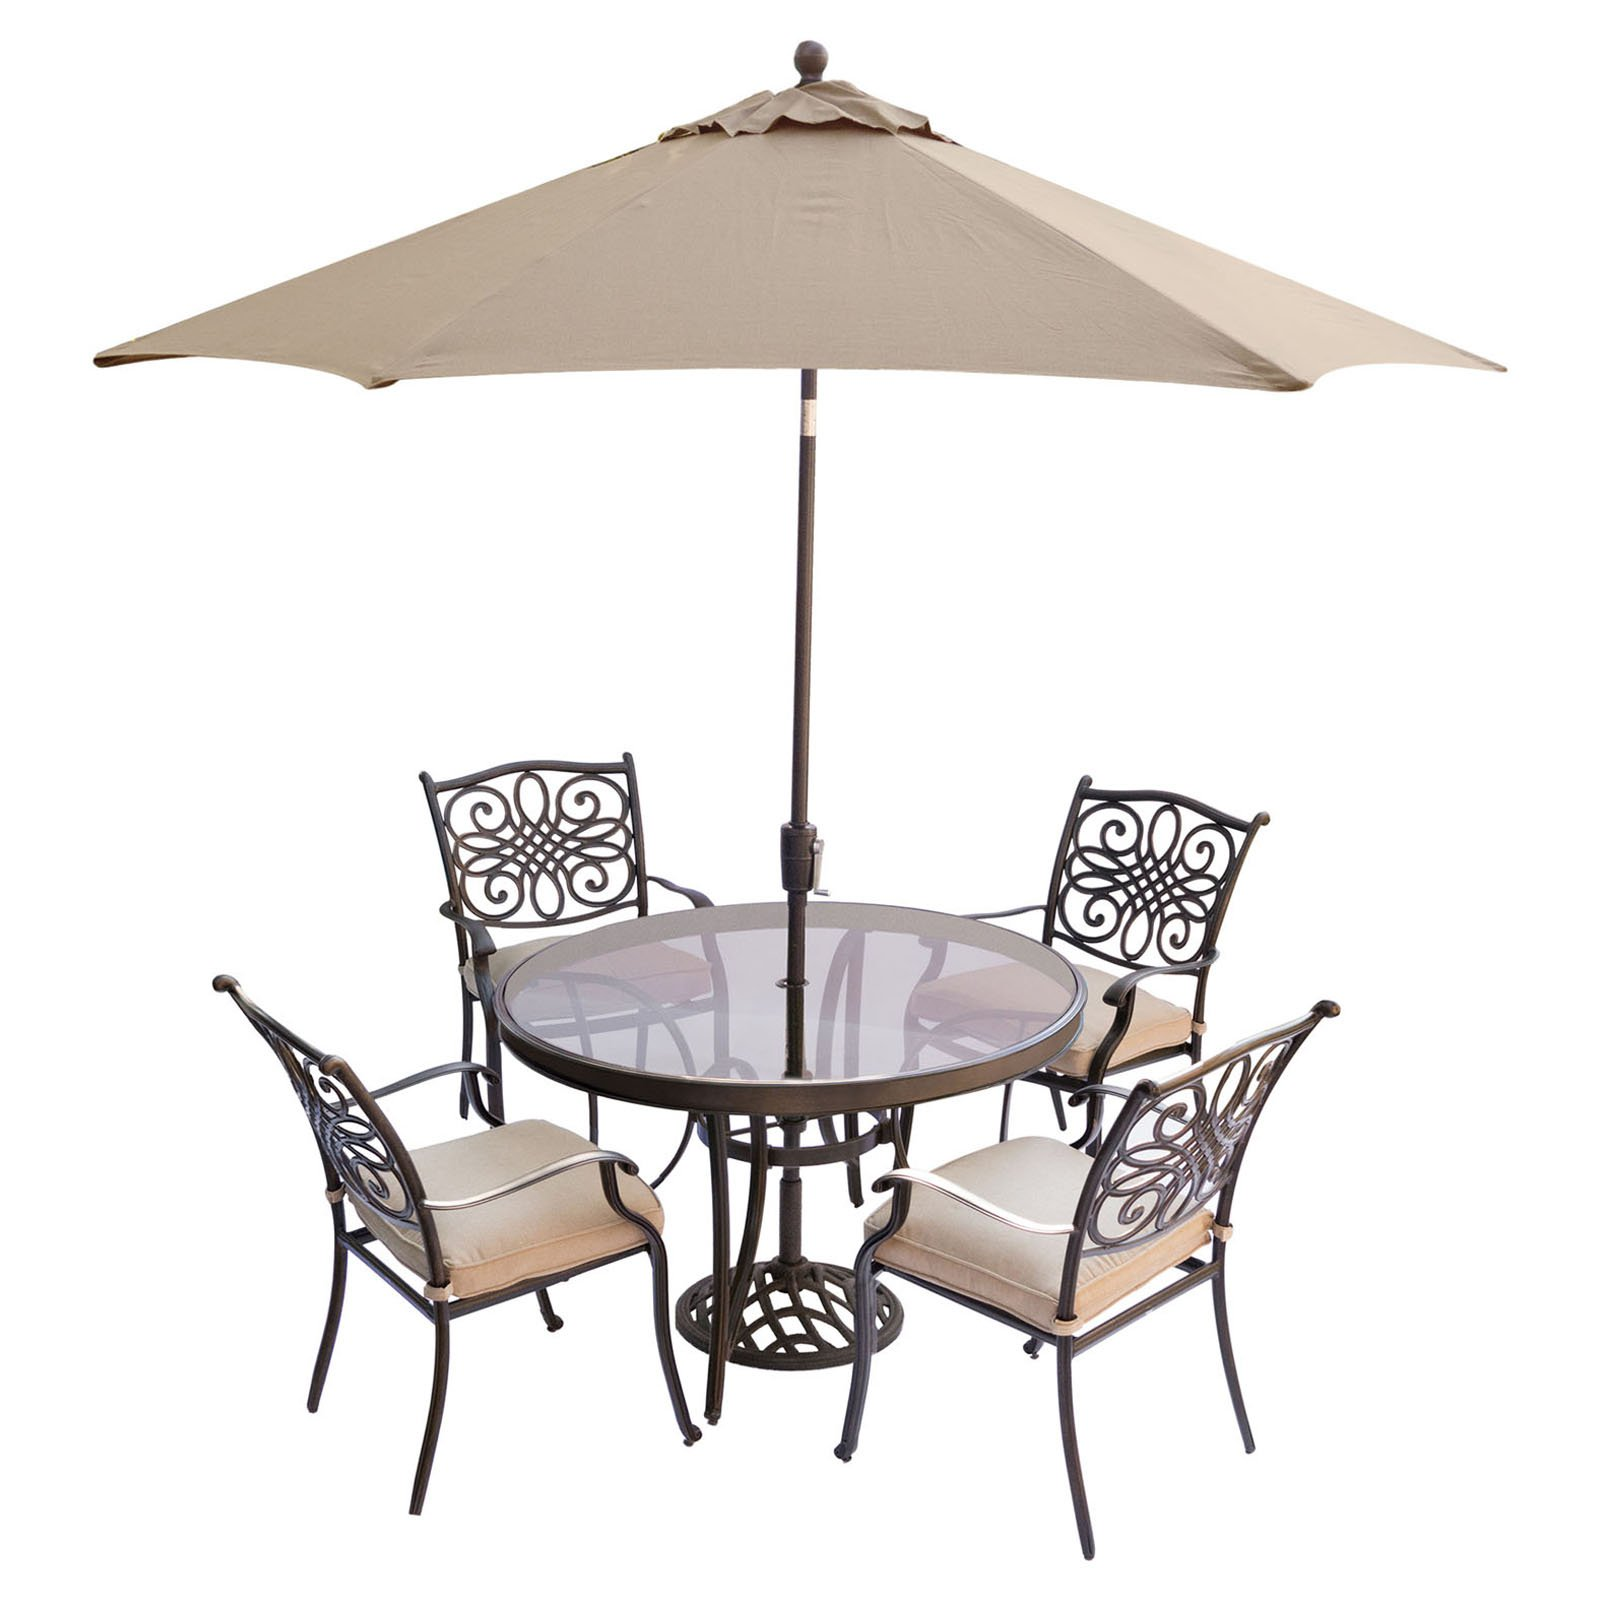 Hanover Outdoor Traditions 5-Piece Glass-Top Dining Set with Stationary Chairs